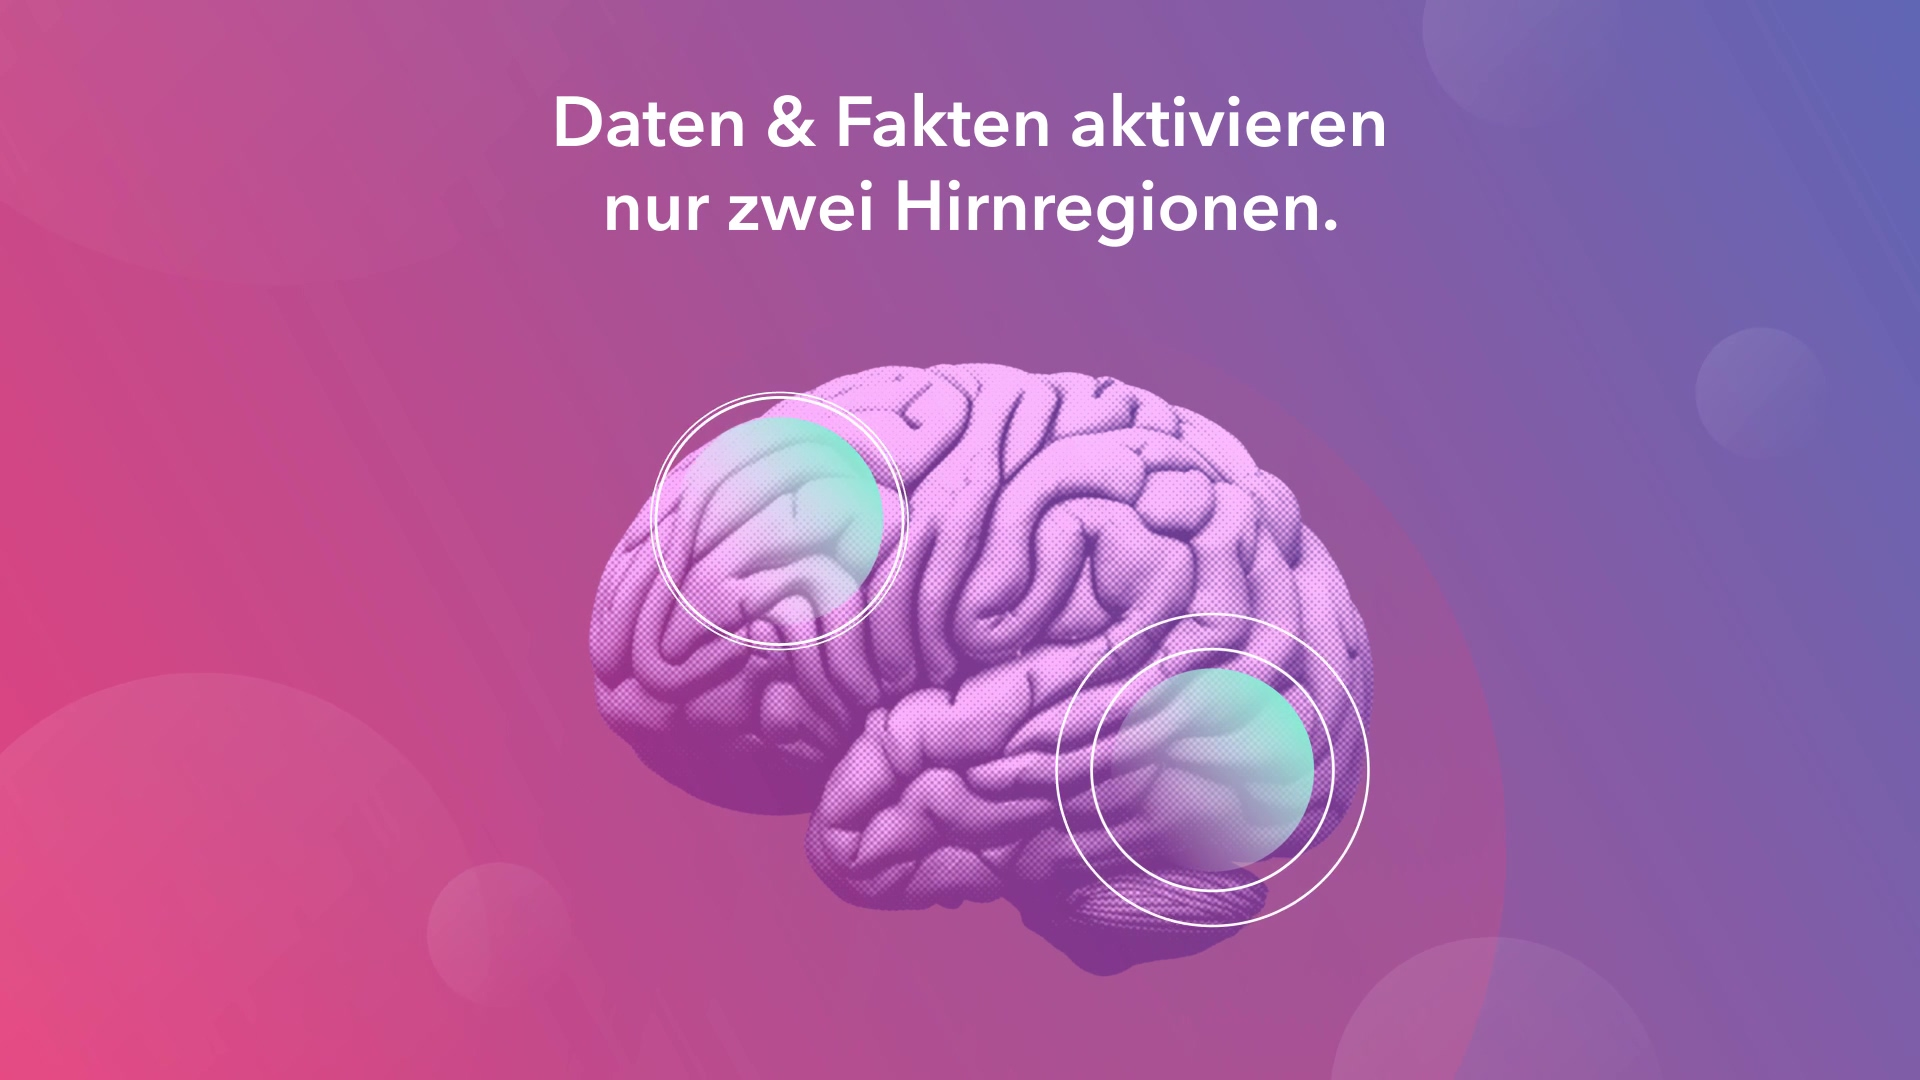 18-06-20_HubSpot_YourBrainLovesStories_DE_HD_V1